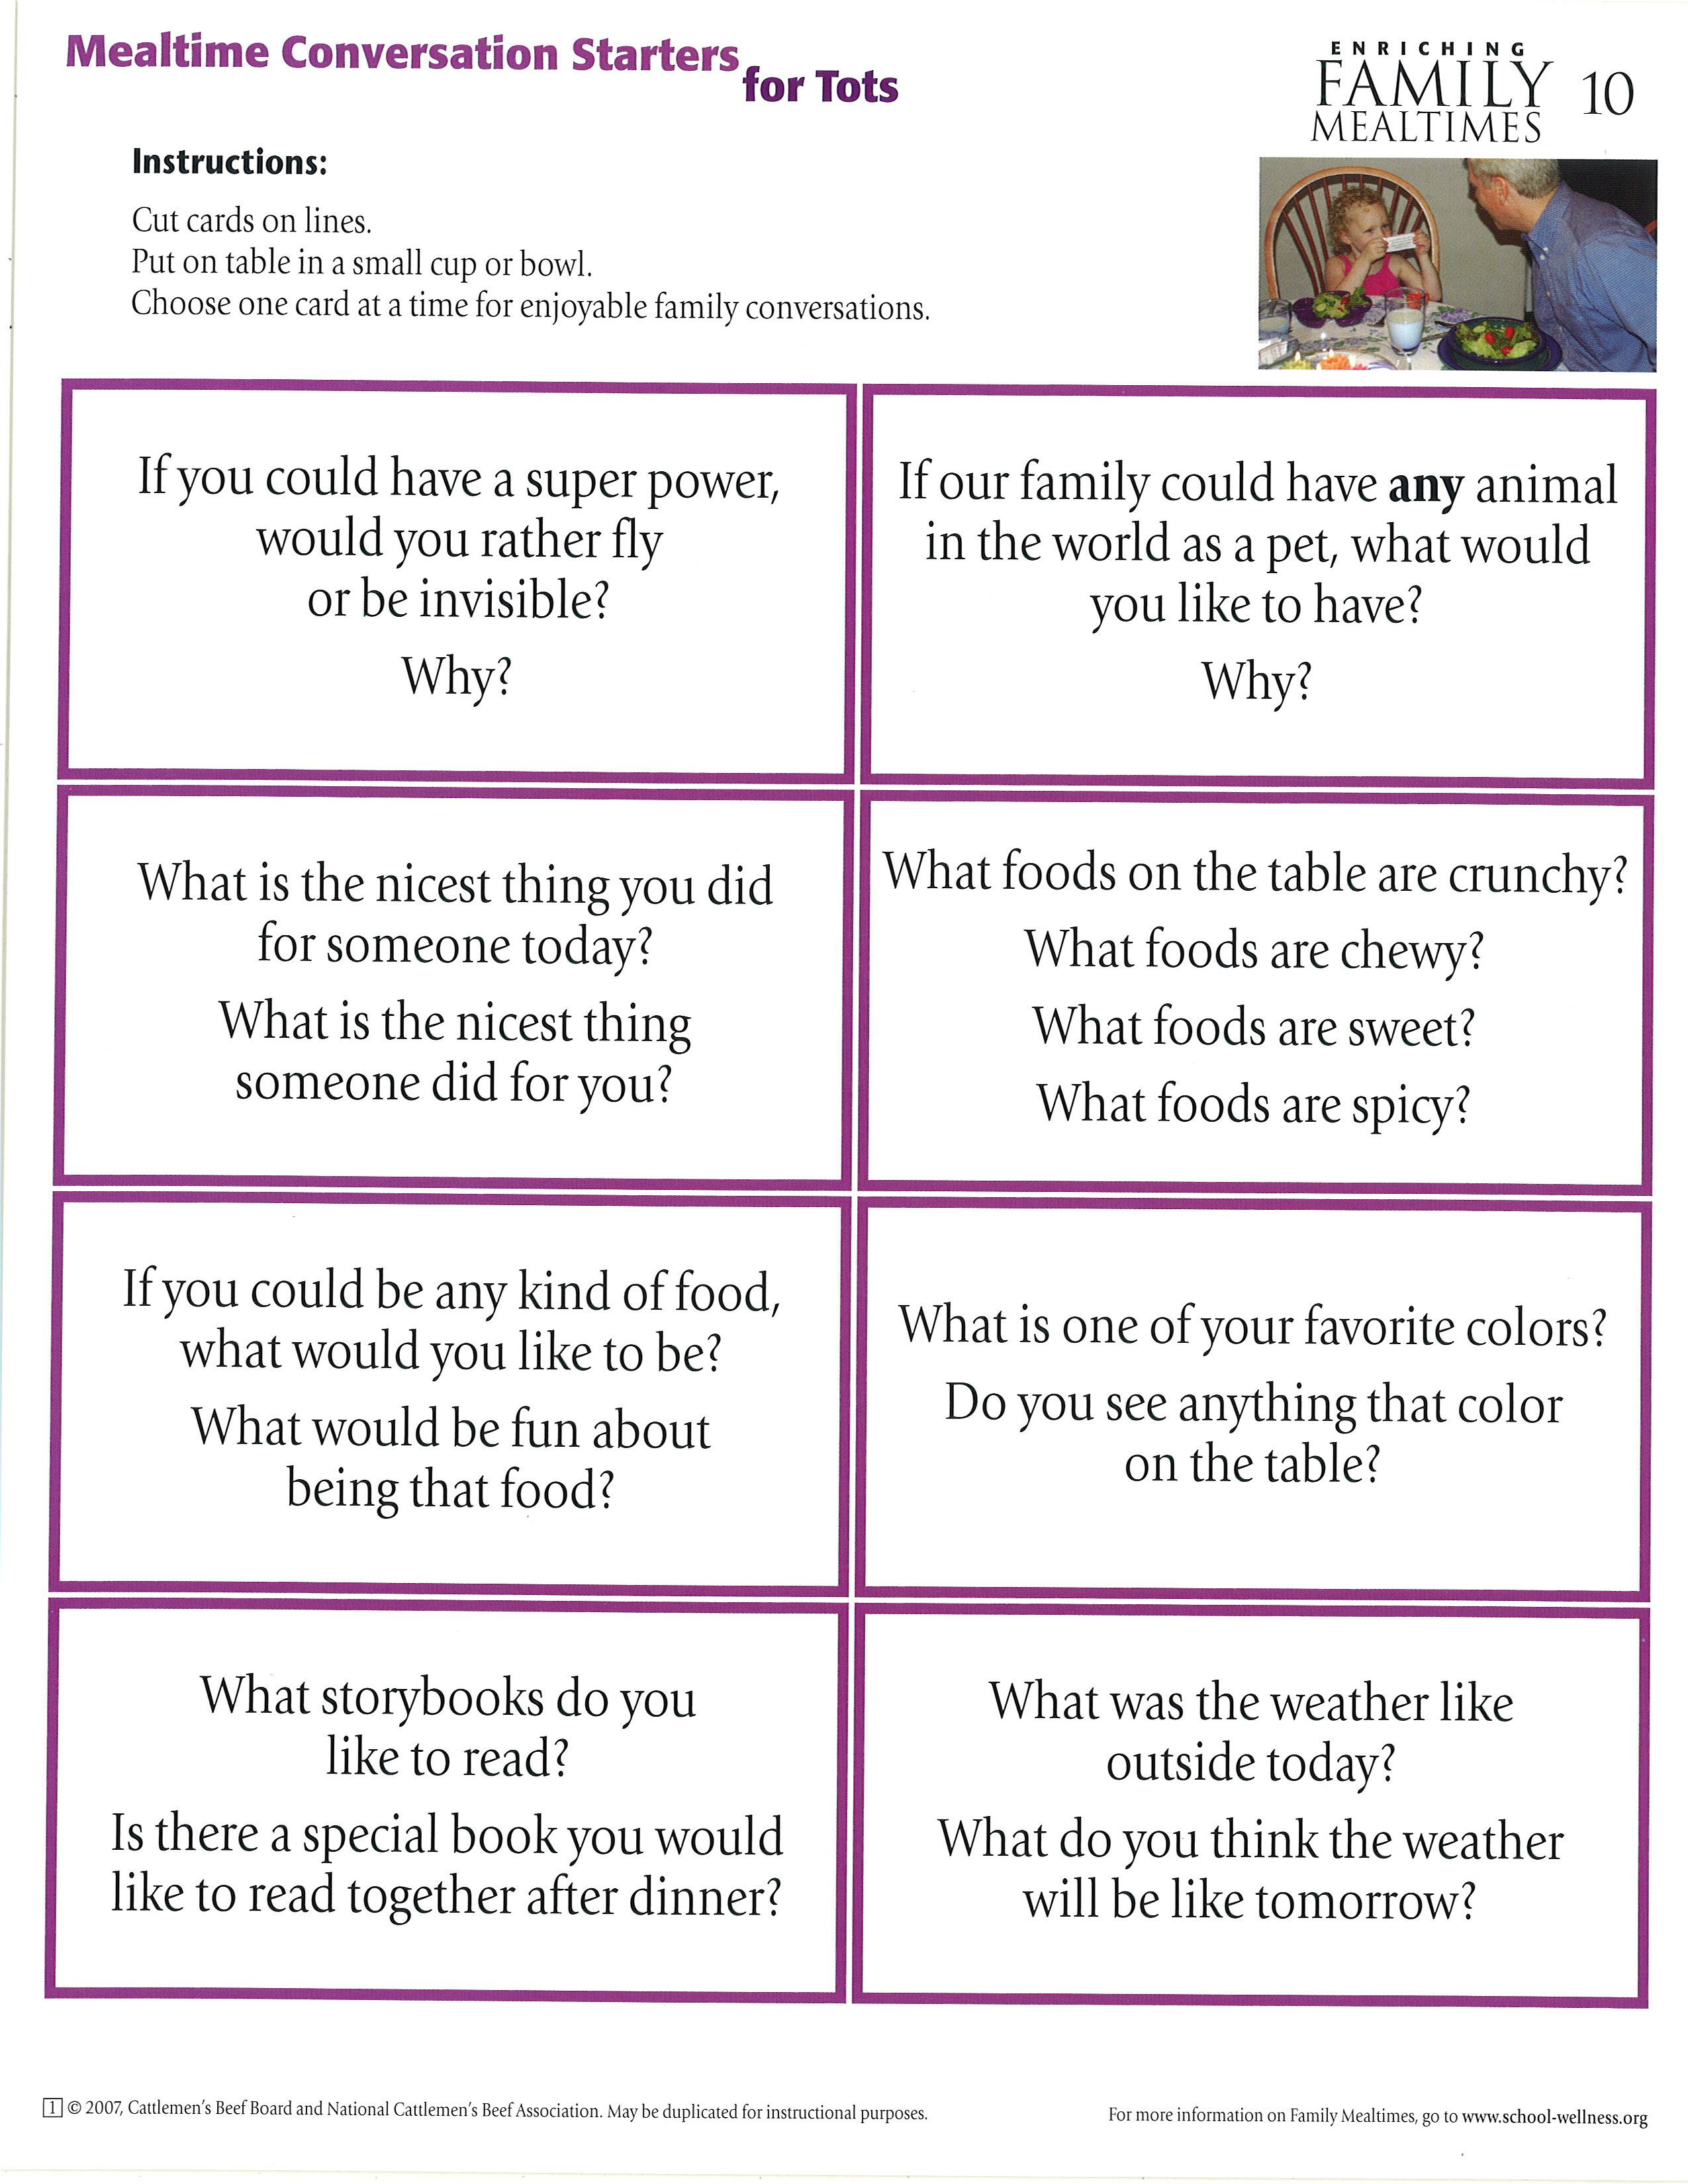 Mealtime Conversation Starters For Toddlers Nybeef